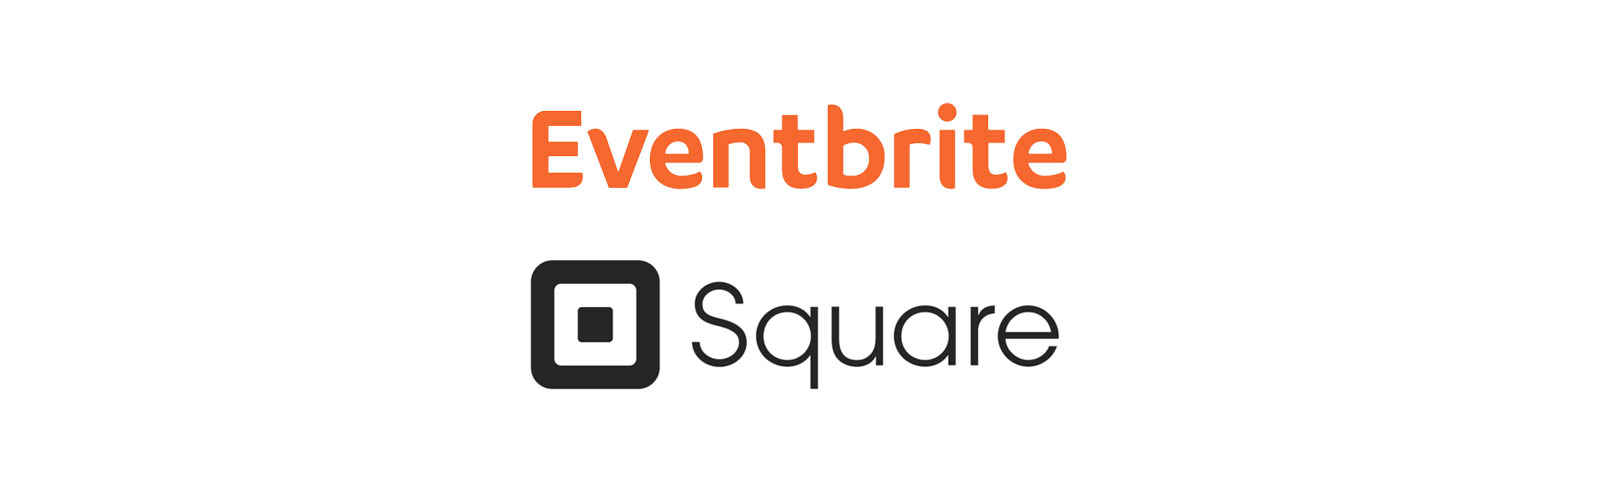 eventbrite-square